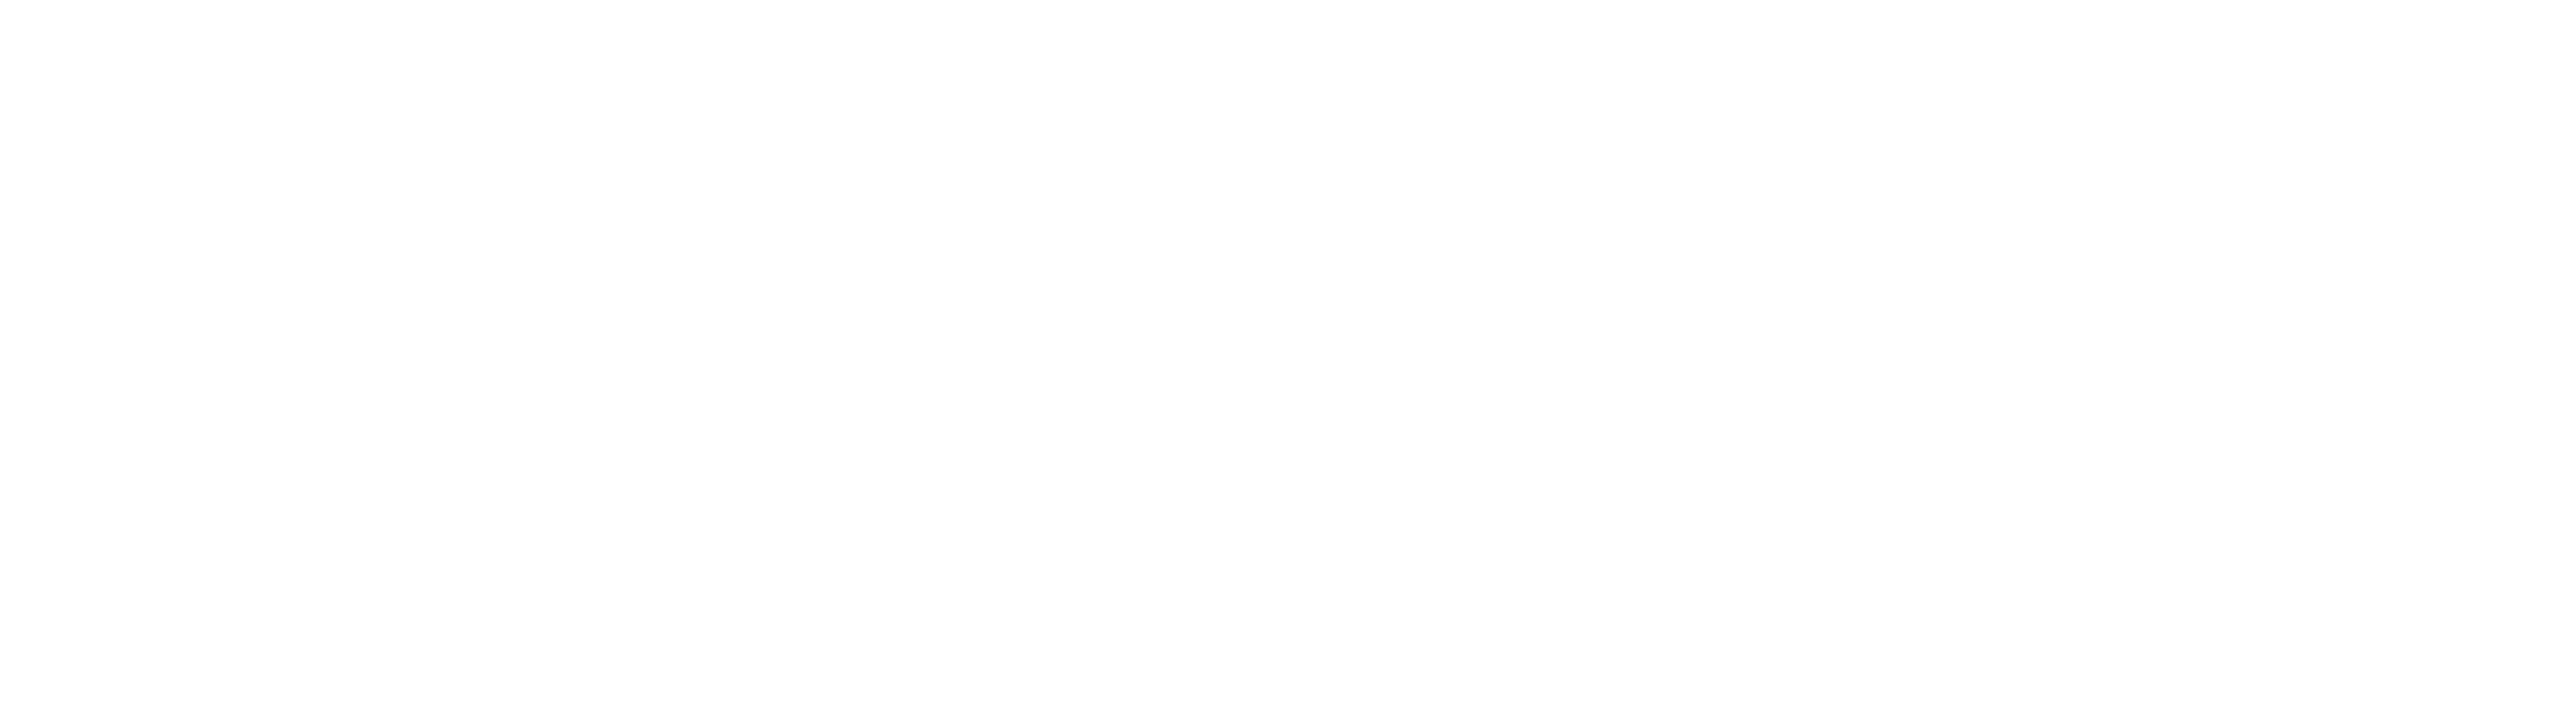 Germantown Tn Florist Free Flower Delivery The English Garden